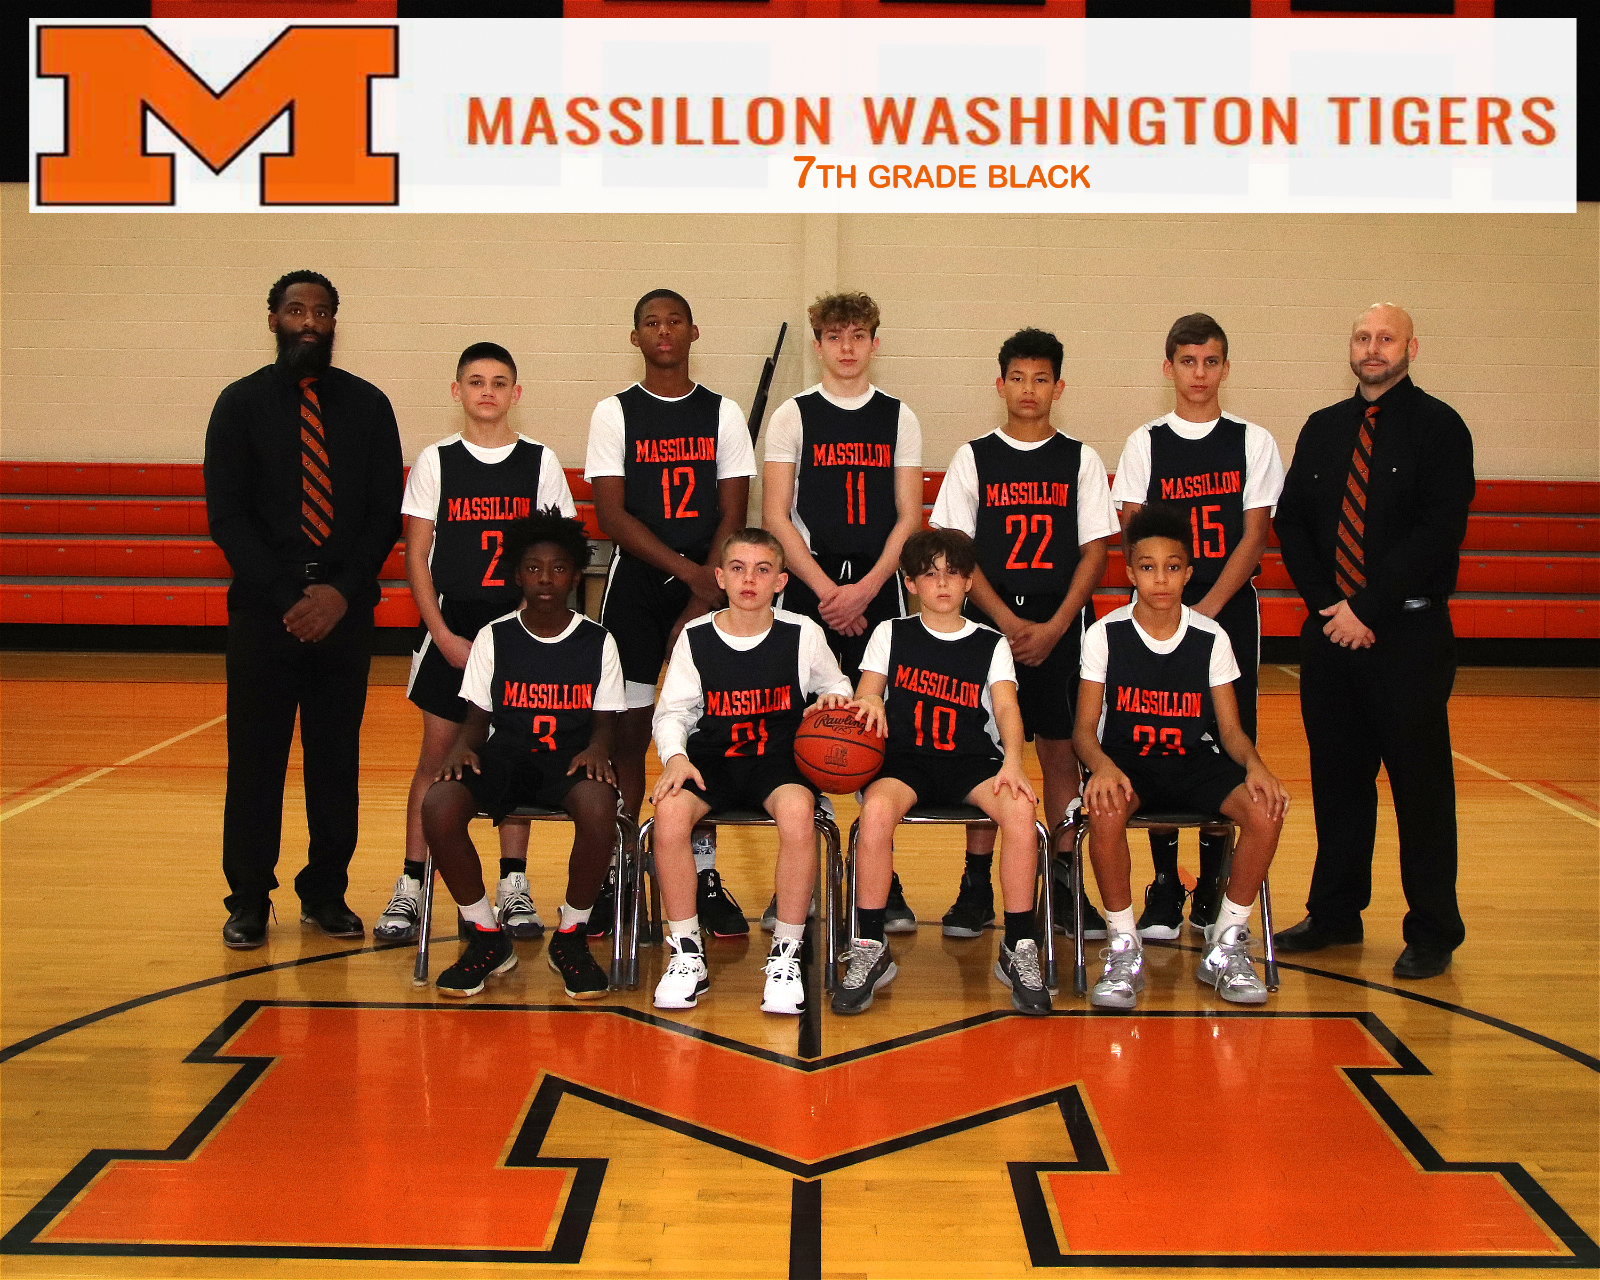 Massillon Junior High 7th Grade Black